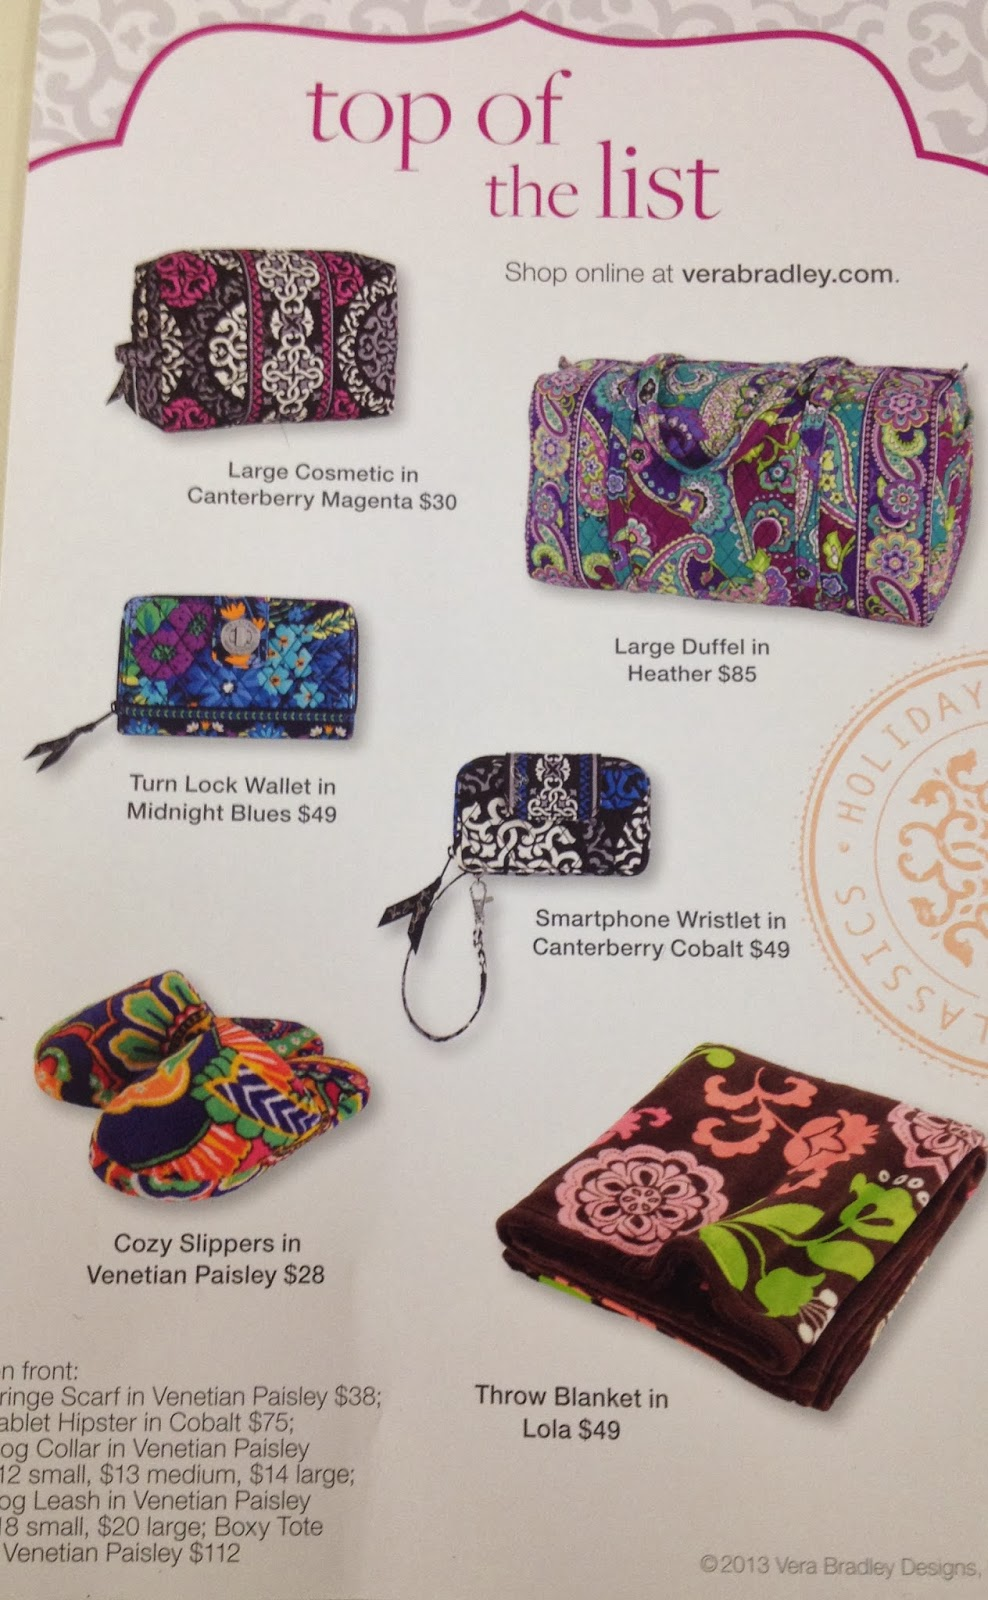 marketing analysis vera bradley Case 13, vera bradley in 2014: will the company's strategy reverse its downward trend synopsis of the major case facts, key problems, and strategic issues that management needs to address strategic analysis of those key issues utilizing tools and techniques presented in the text (using tables and charts if appropriate.